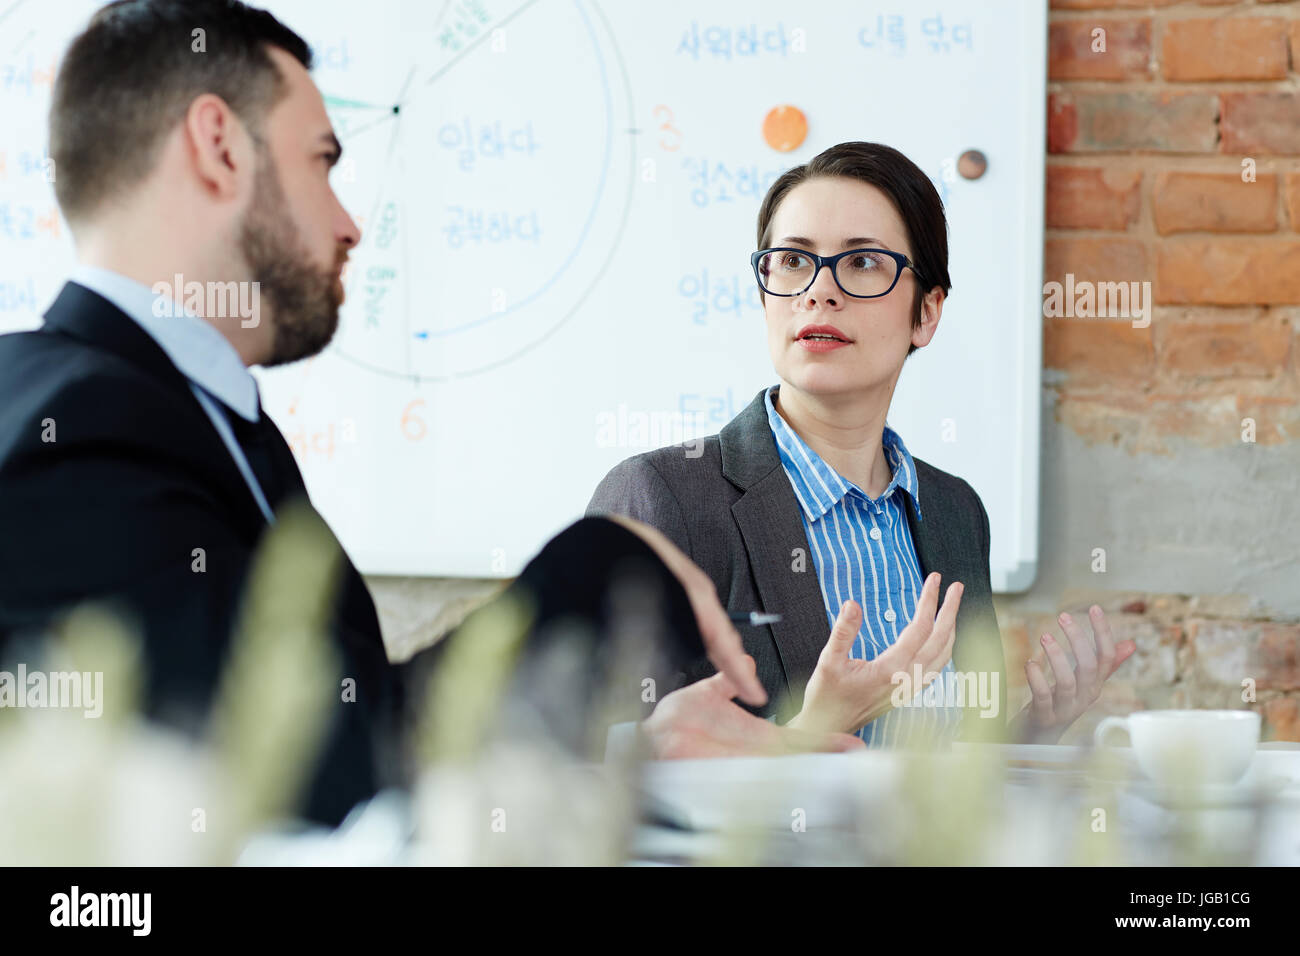 Start-up discussion - Stock Image